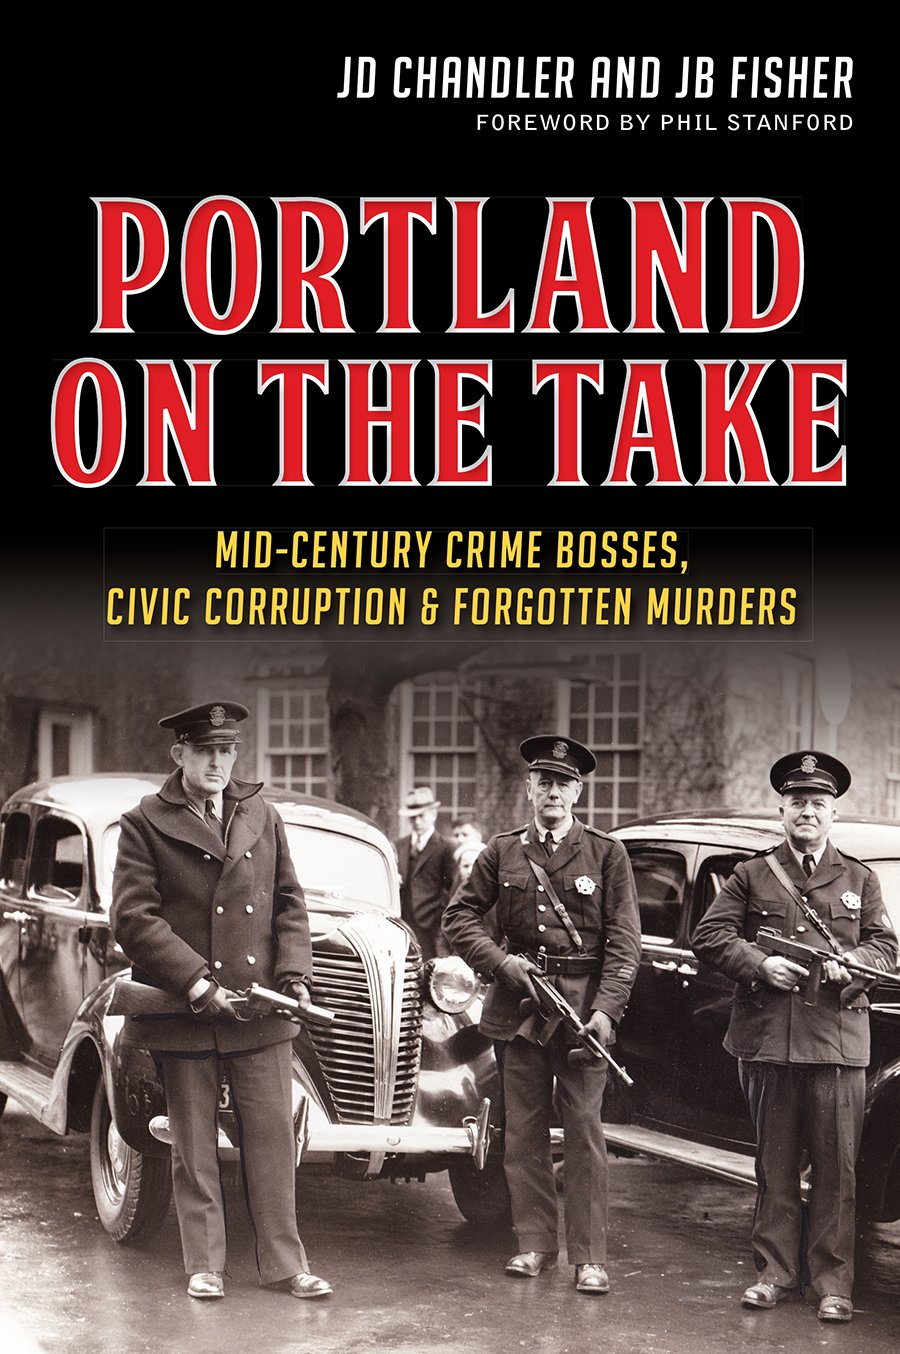 Mid-Century Crime Bosses, Civic Corruption and Forgotten Murders